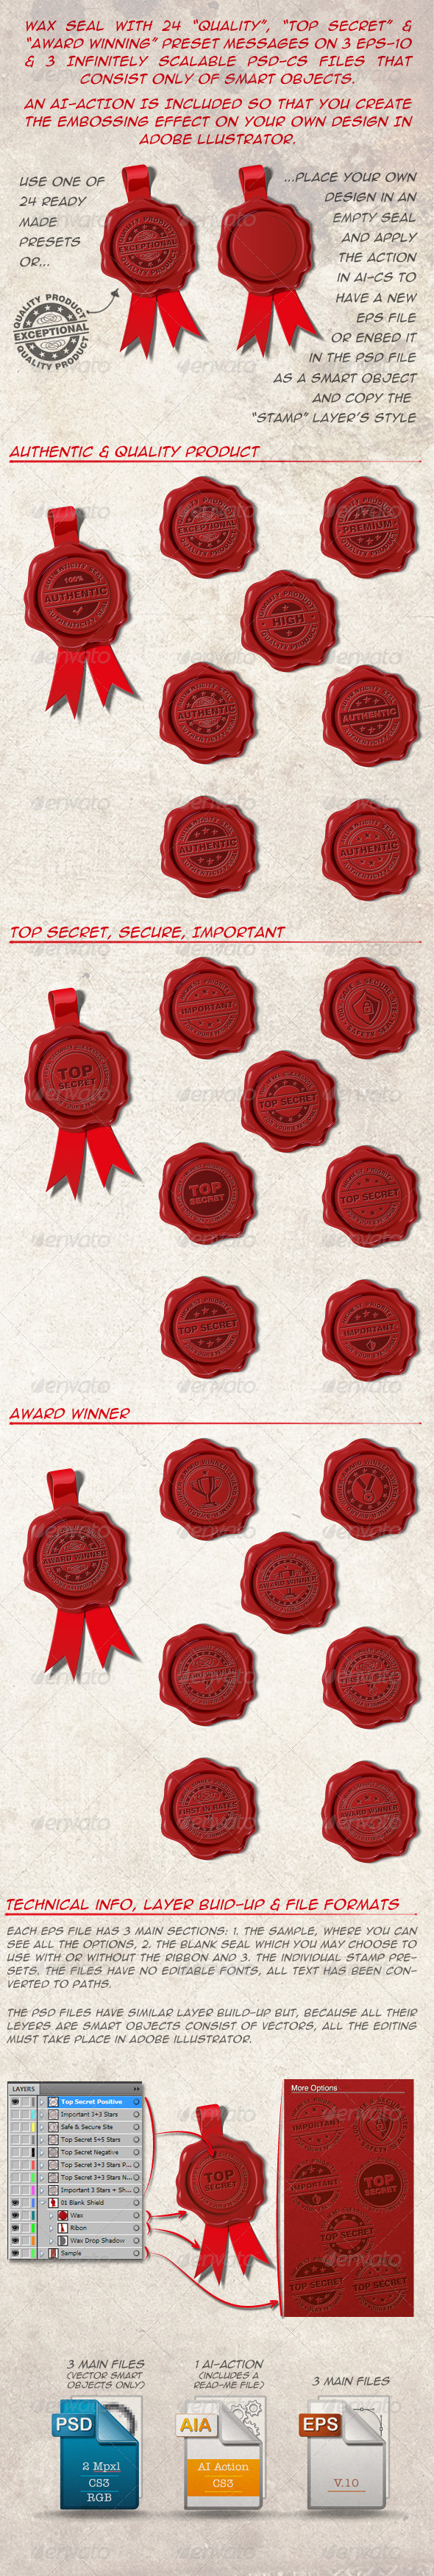 24 Wax Seals Top Secret Award Winner and Quality - Man-made Objects Objects